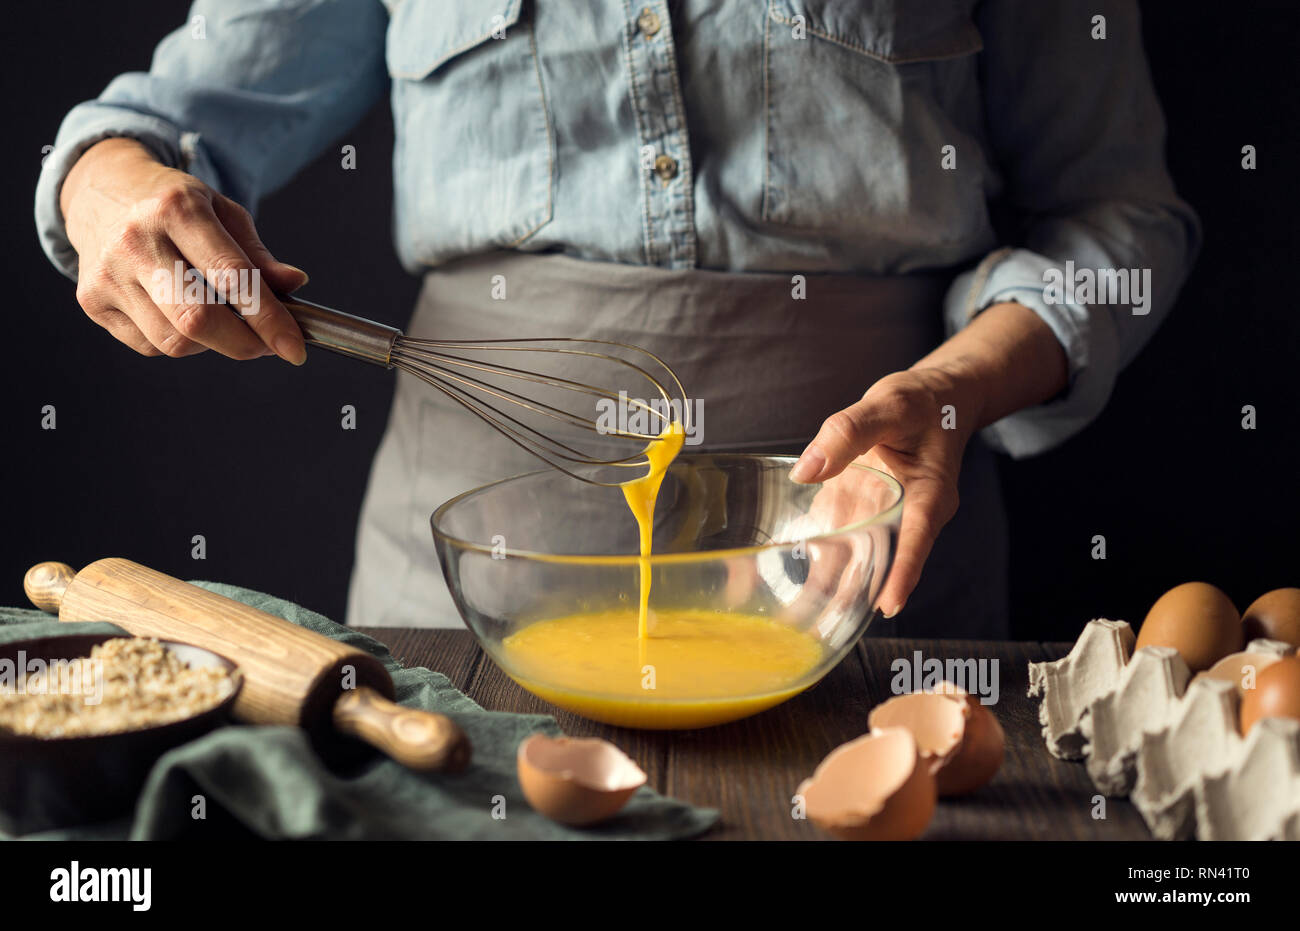 Hands of man whisking bowl of eggs - Stock Image